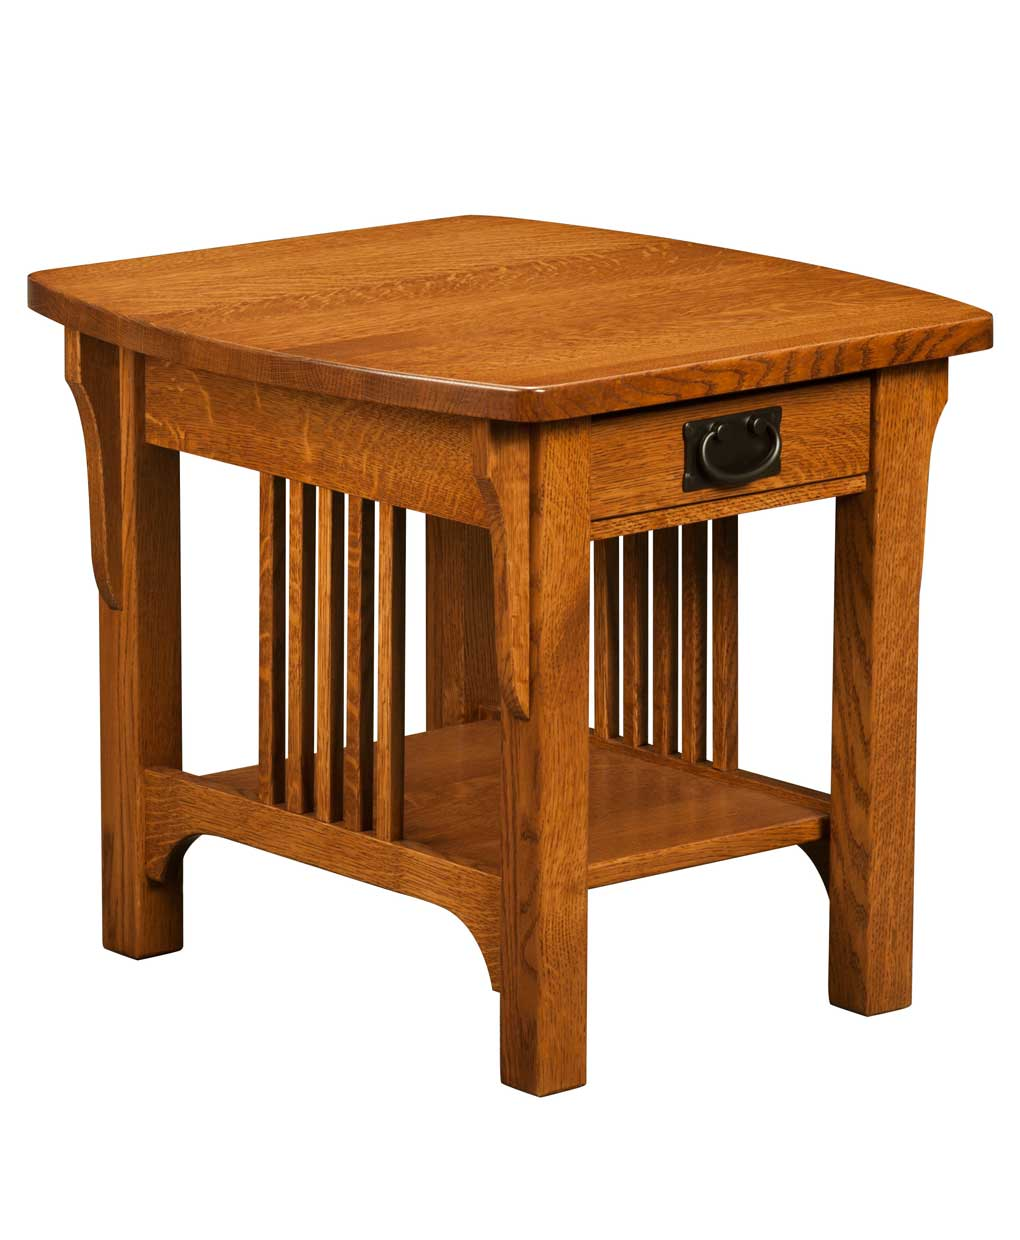 Poly Lumber Outdoor Furniture Home / Shop / Living Room / Coffee, End, and Sofa Tables / End Tables